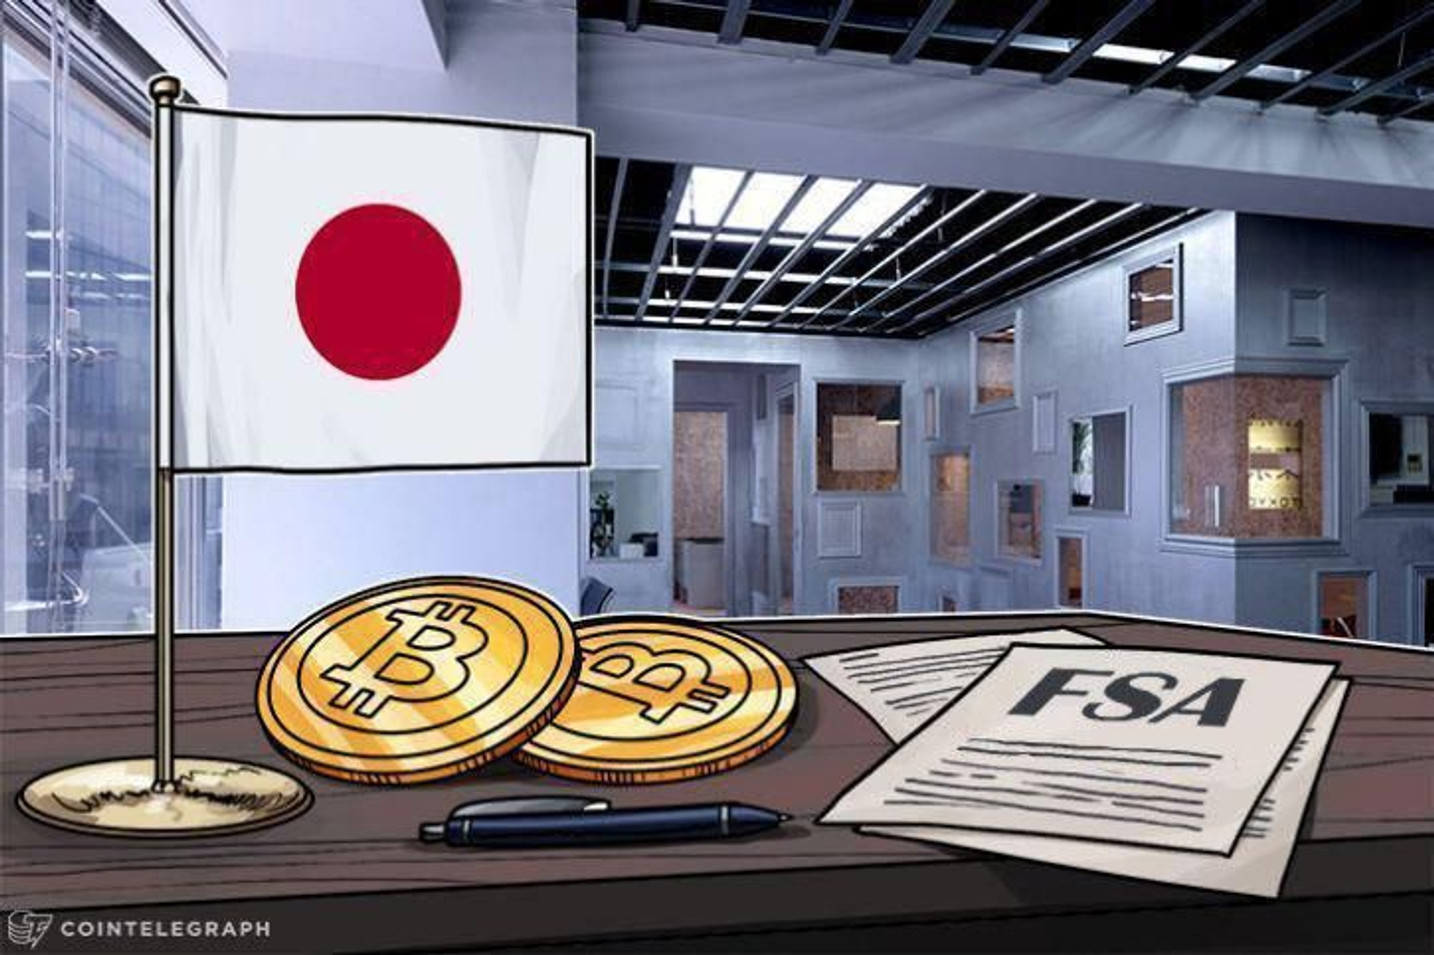 Nikkei Report: Japan To Issue Warning Against Crypto Exchange Binance, Twitter Cries FUD